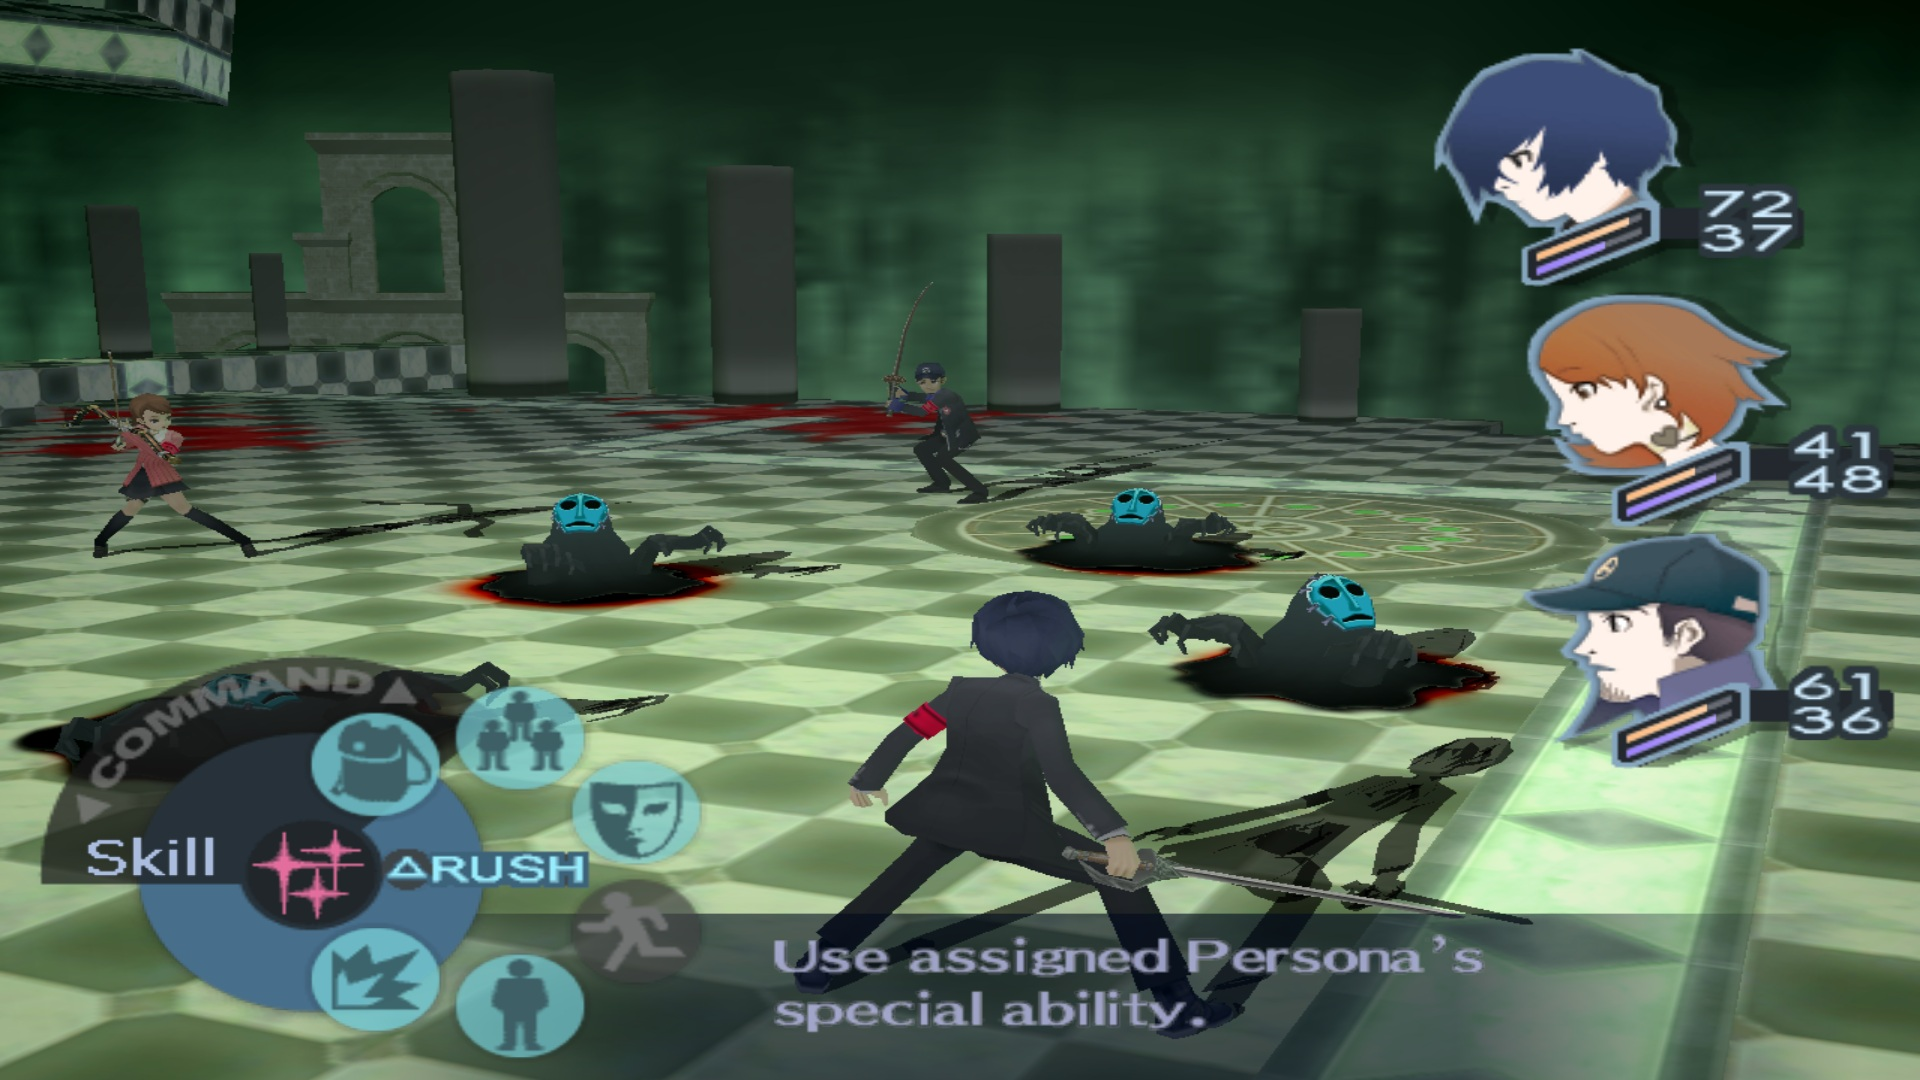 Image result for persona 3 gameplay